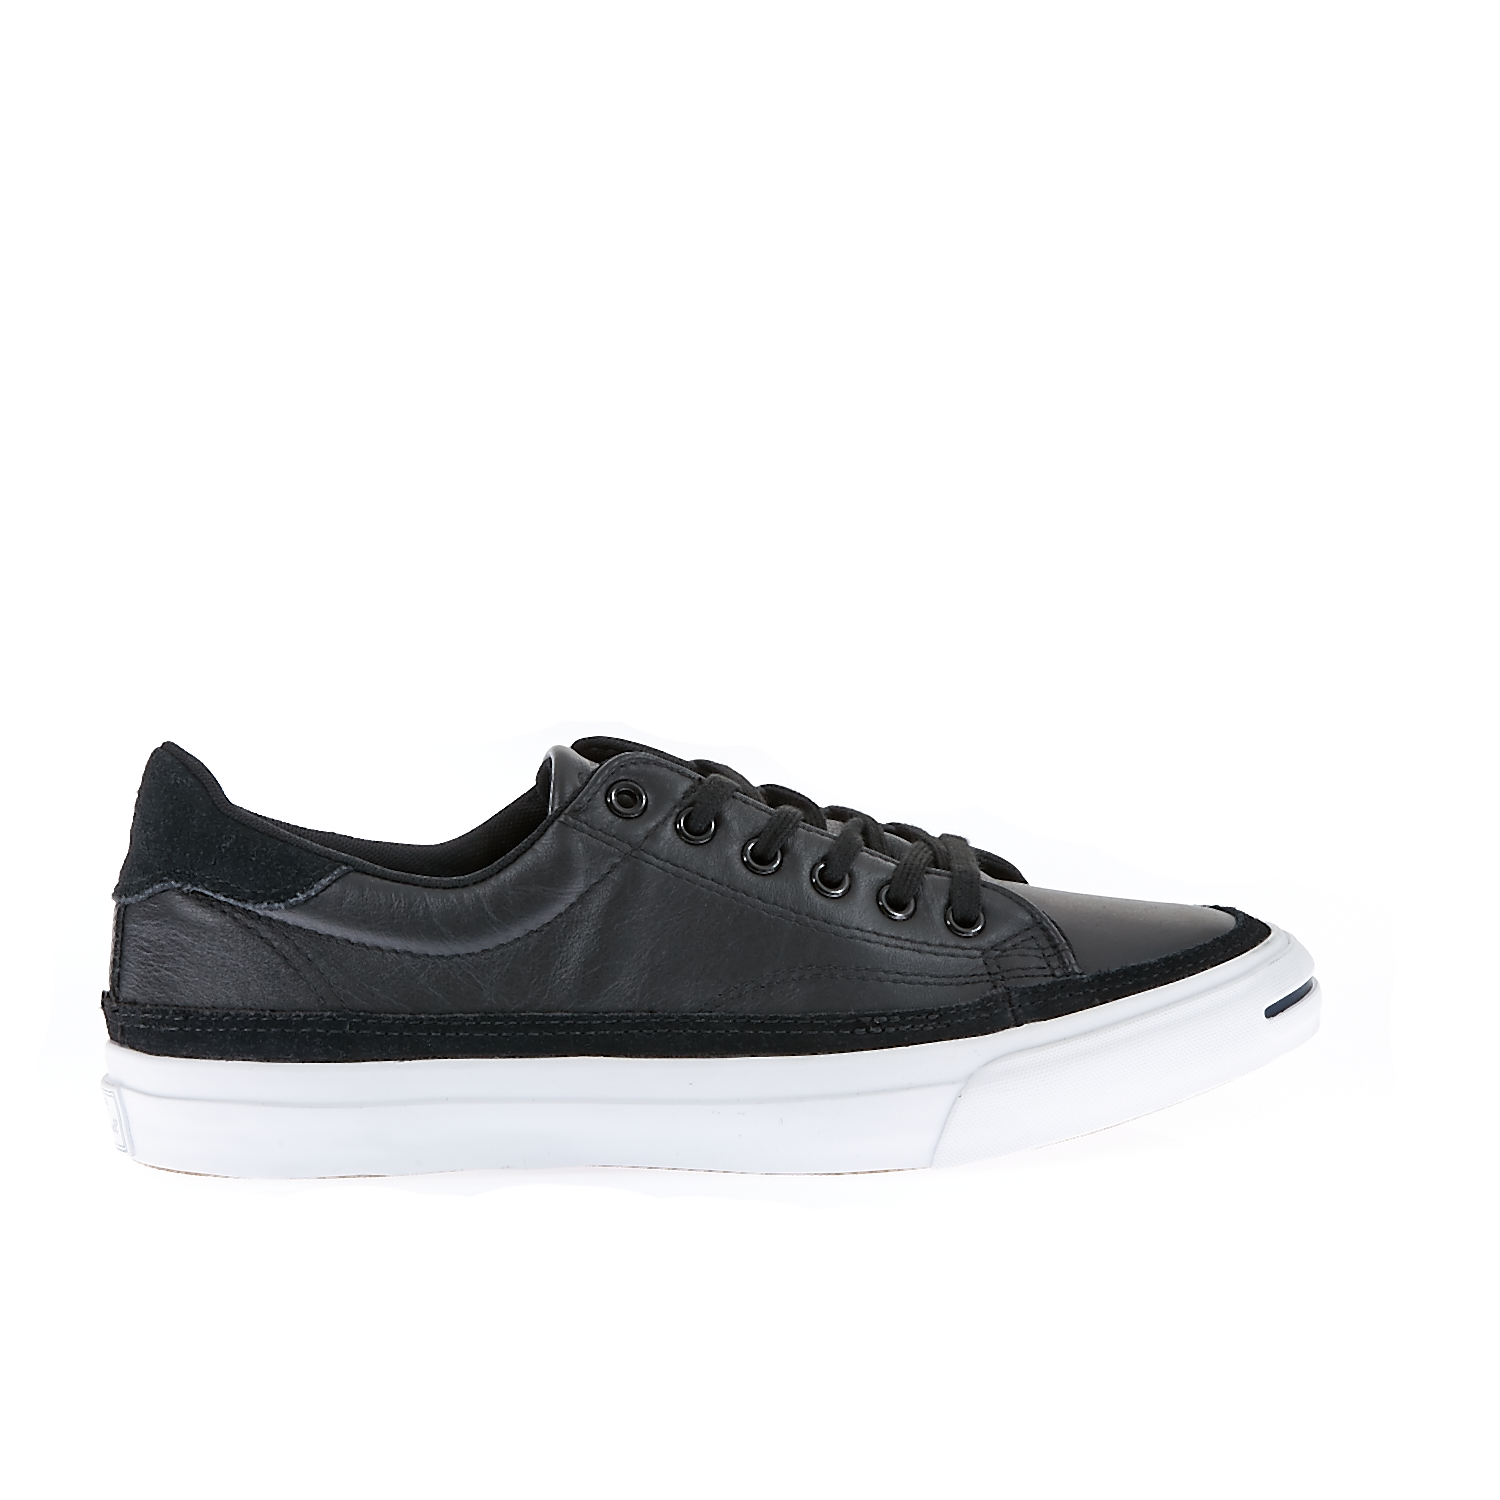 CONVERSE – Ανδρικά παπούτσια Jack Purcell II Ox μαύρα